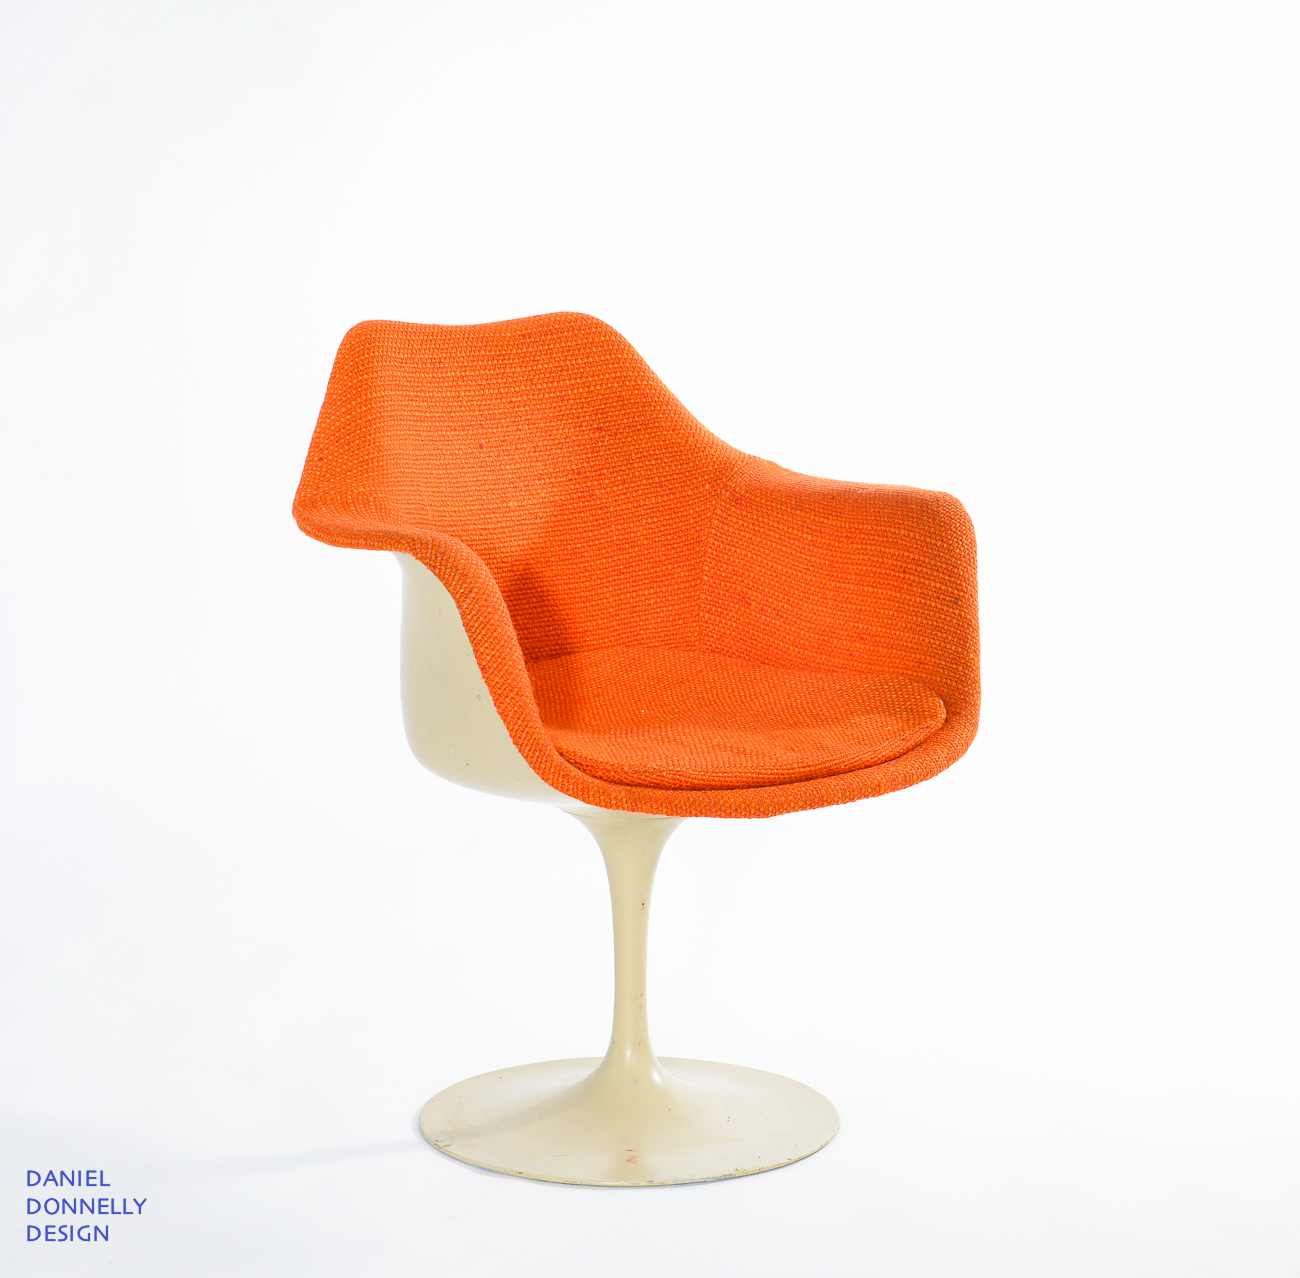 DD chairs 1300 85-9600.jpg